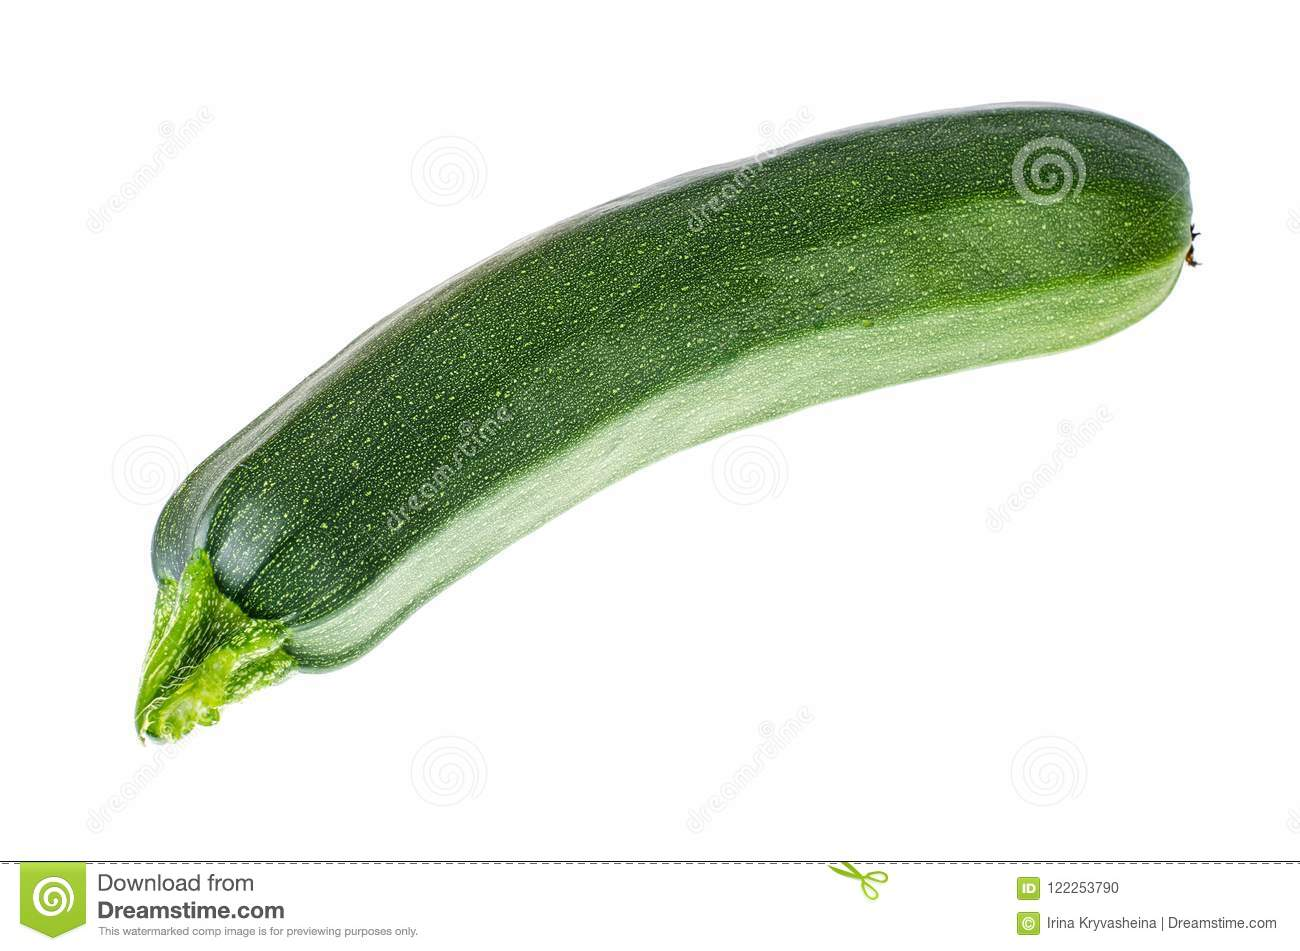 Green zucchini, isolated on white background